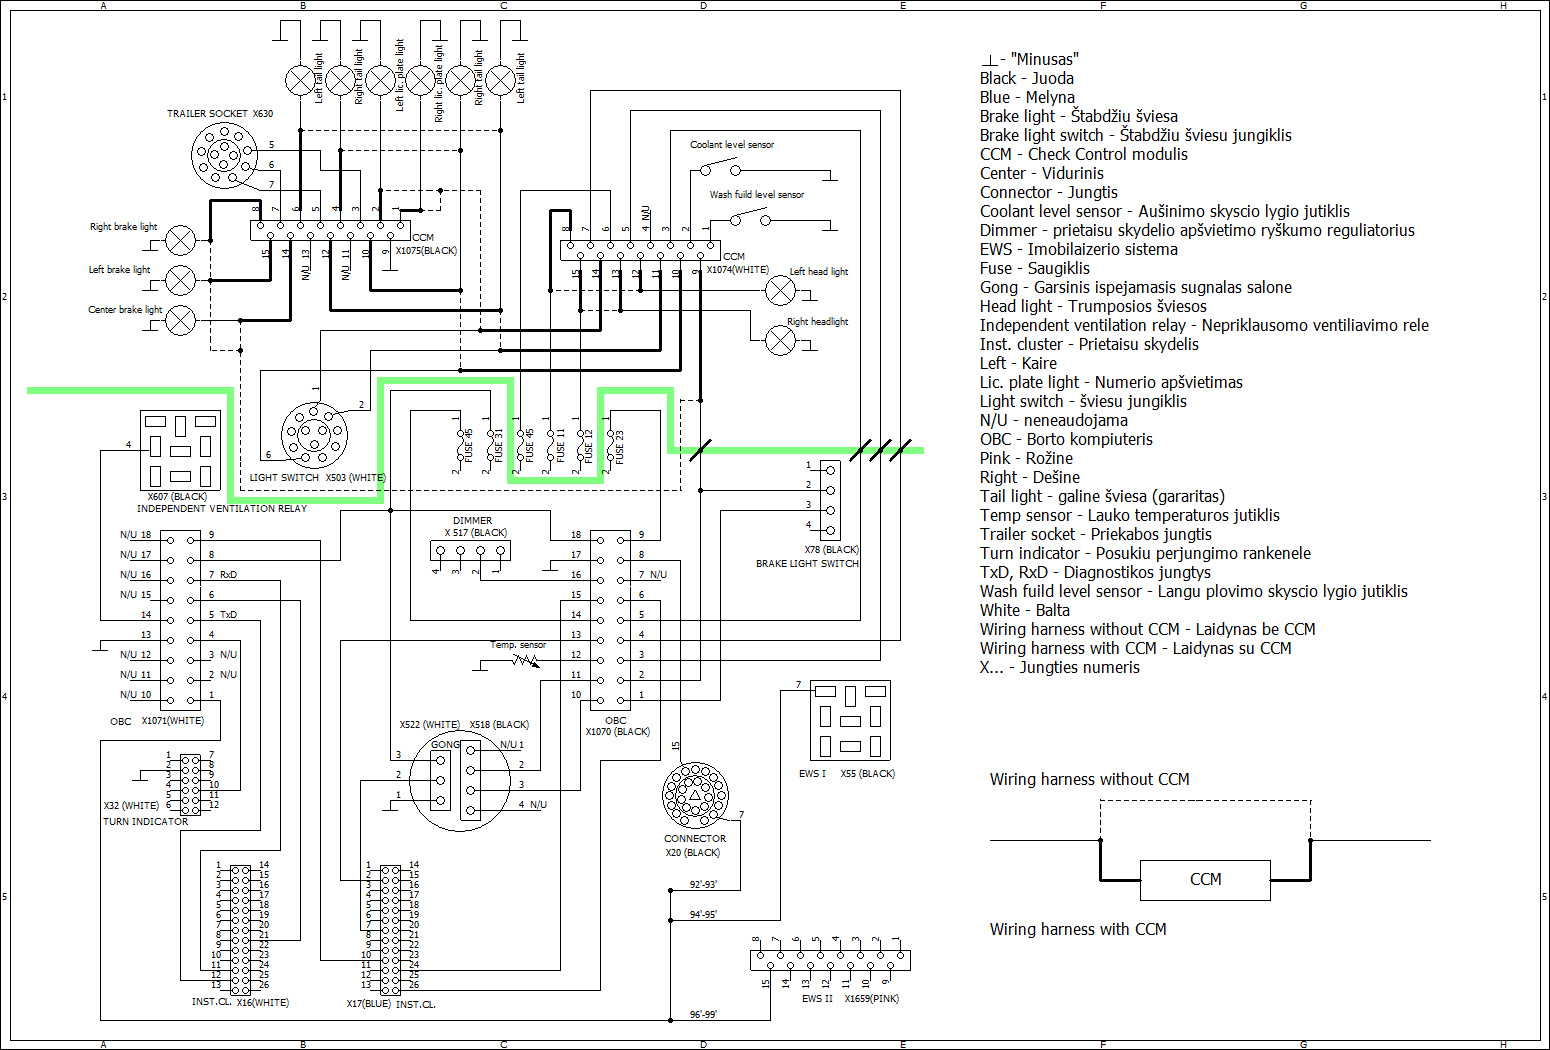 bmw e36 wiring diagram 6v to 12v conversion repair and retrofit obc check control en